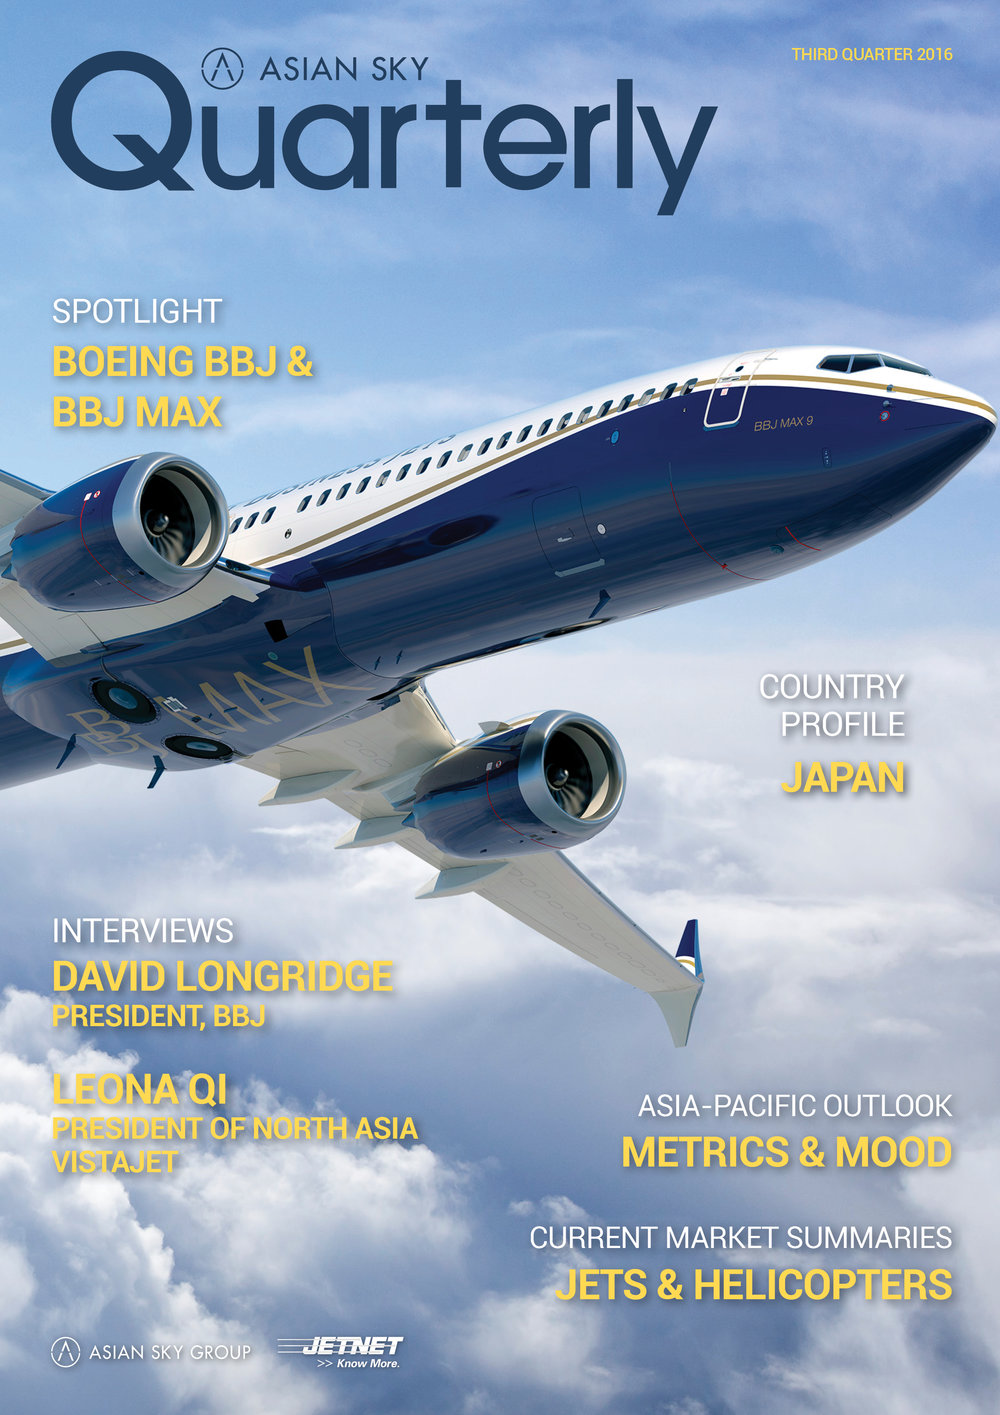 Asian Sky Quarterly - Q3 2016